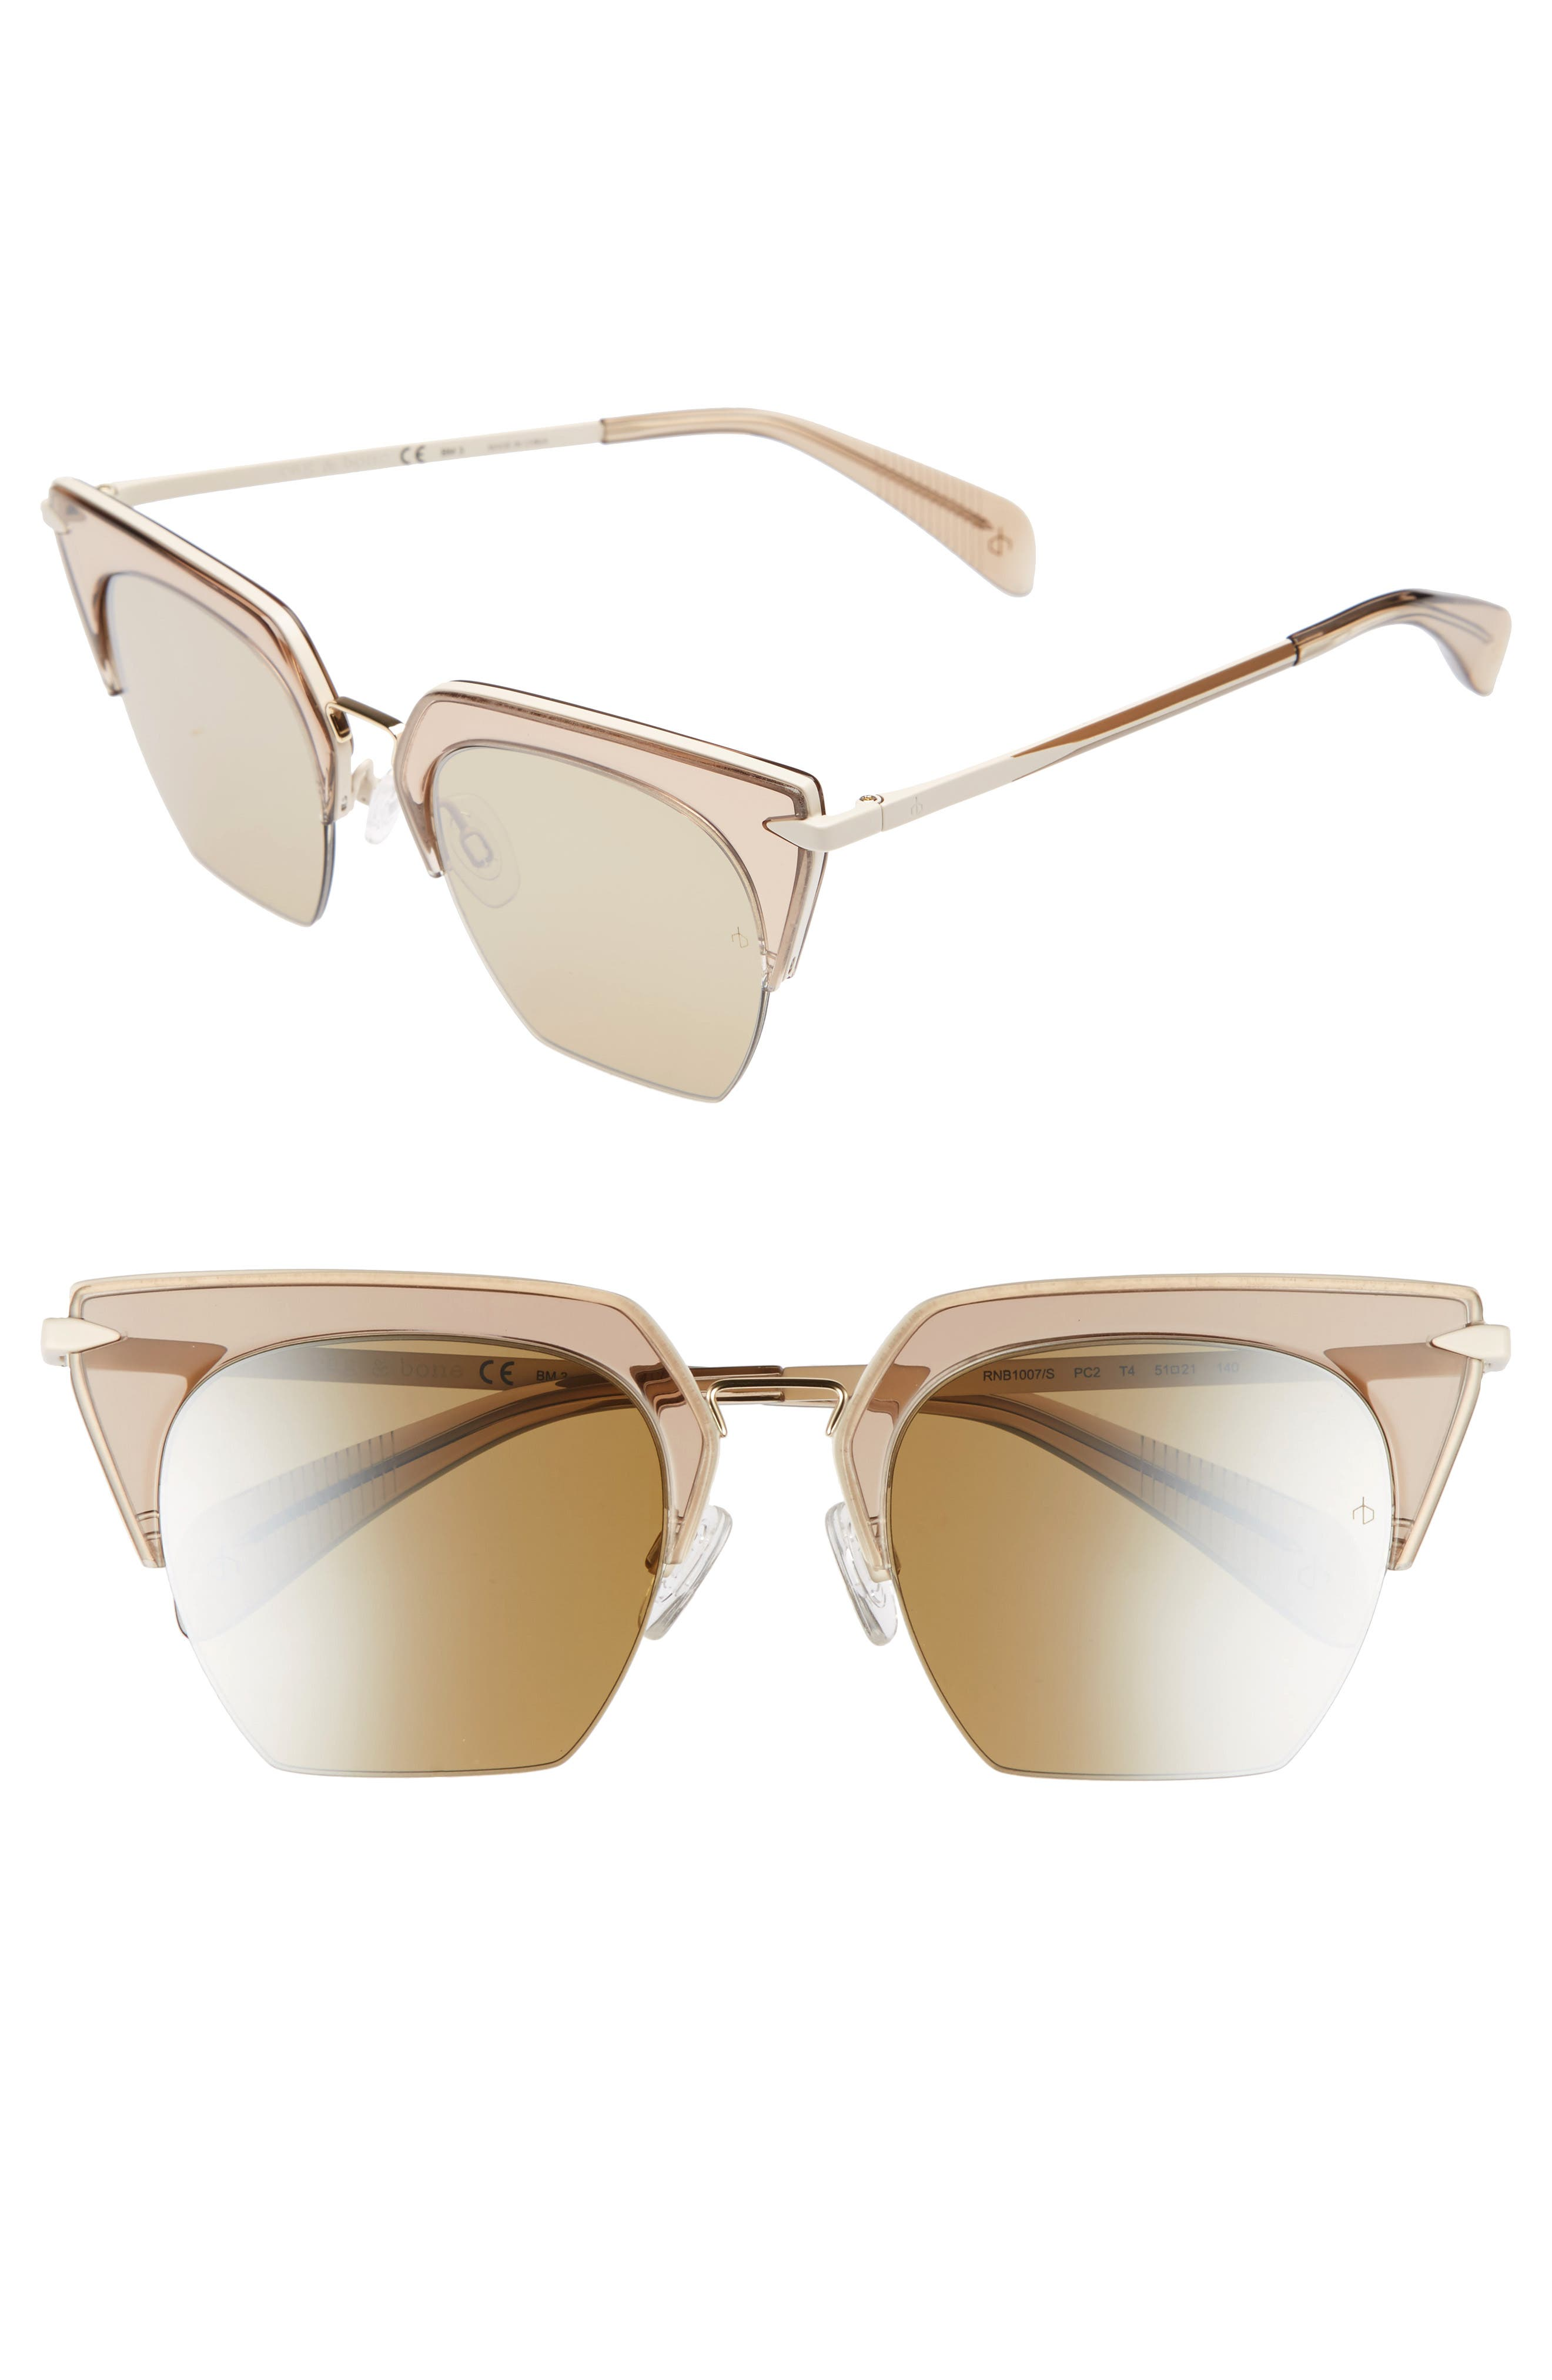 51mm Cat Eye Sunglasses,                         Main,                         color, OPAL BROWN